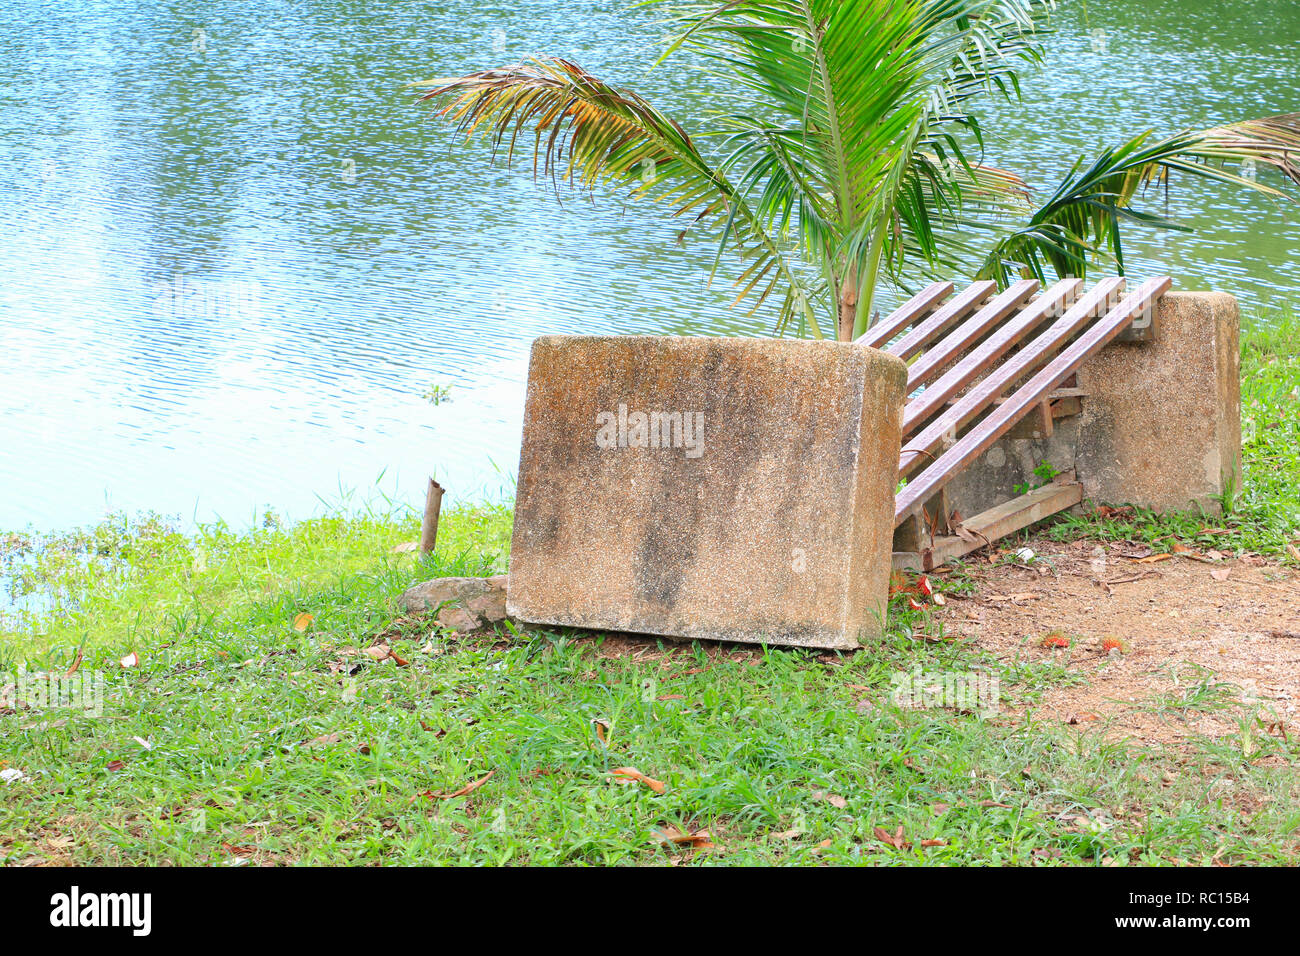 old chair deduct riverside in public park Stock Photo